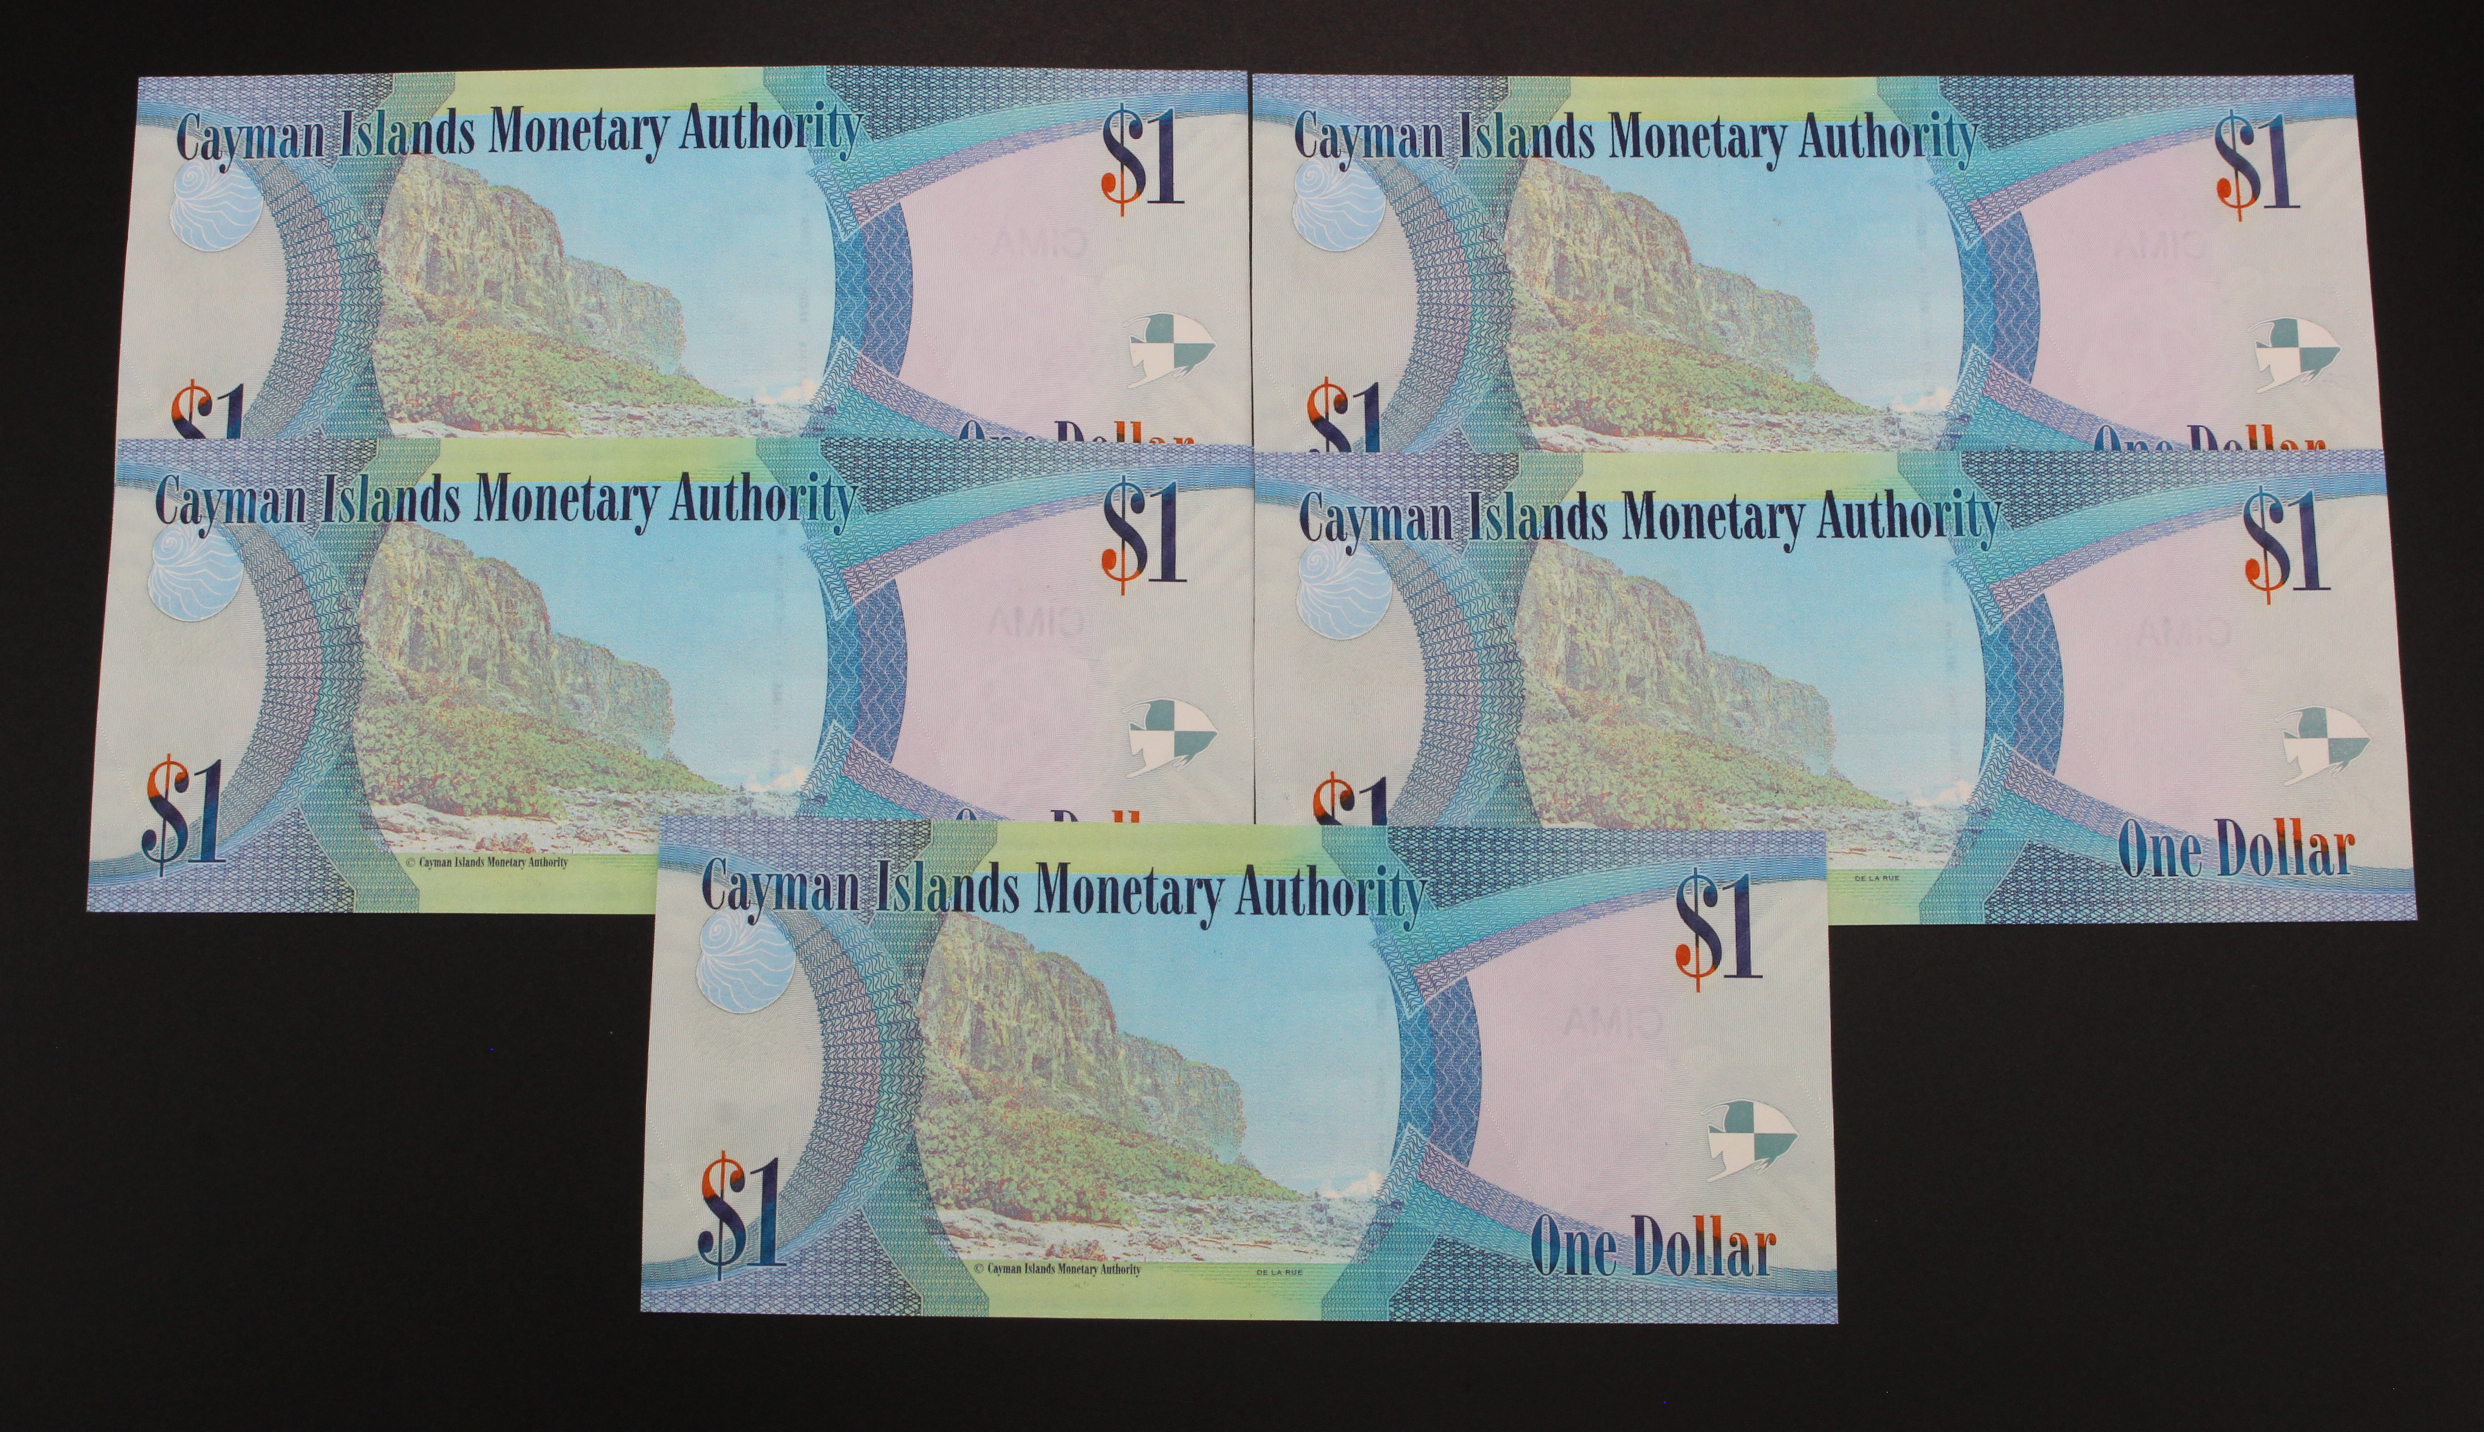 Cayman Islands 1 Dollar REPLACEMENT notes (5) dated 2010, a consecutively numbered run, serial Z/1 - Image 2 of 2